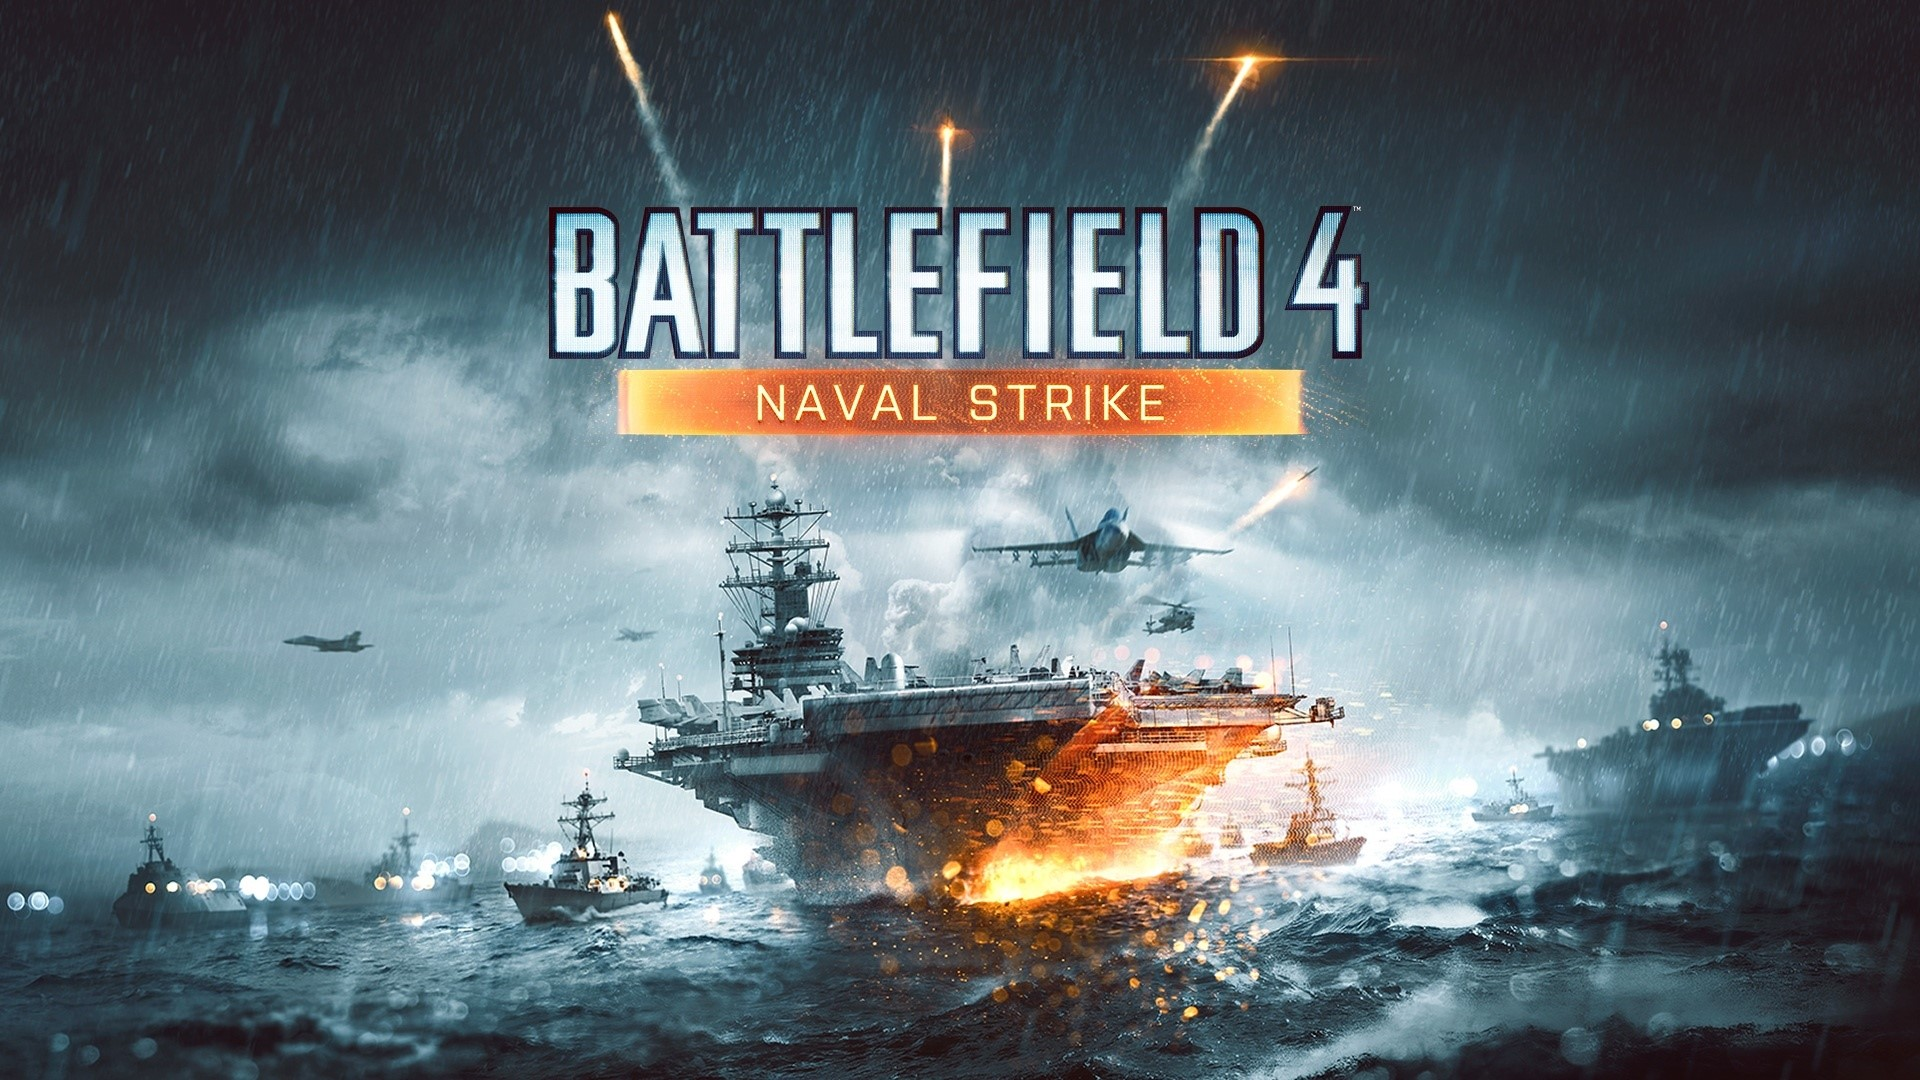 Wallpaper Battlefield 4 Naval Strike